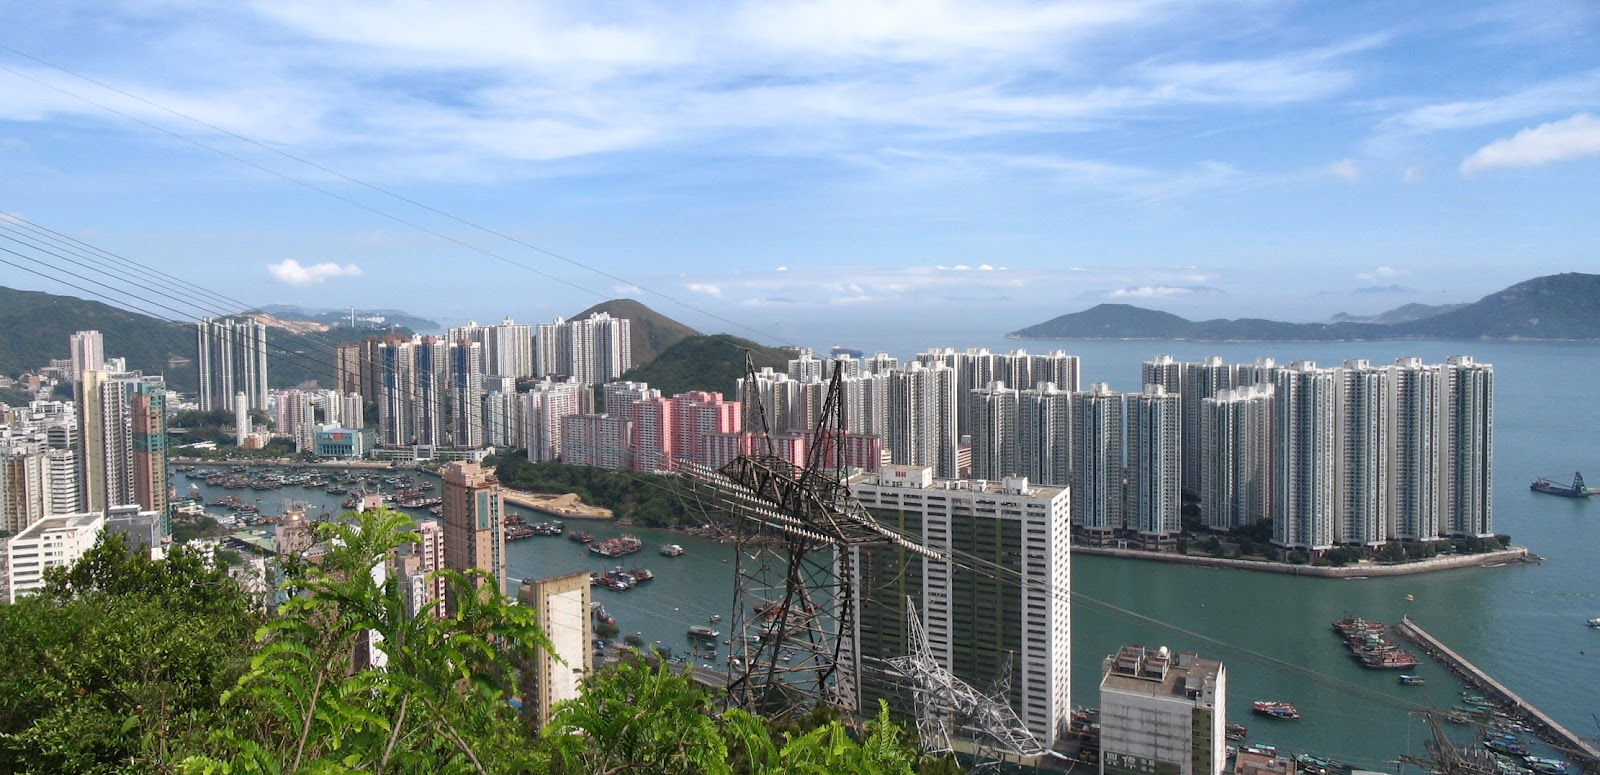 Breathtaking view of Ap Lei Chau